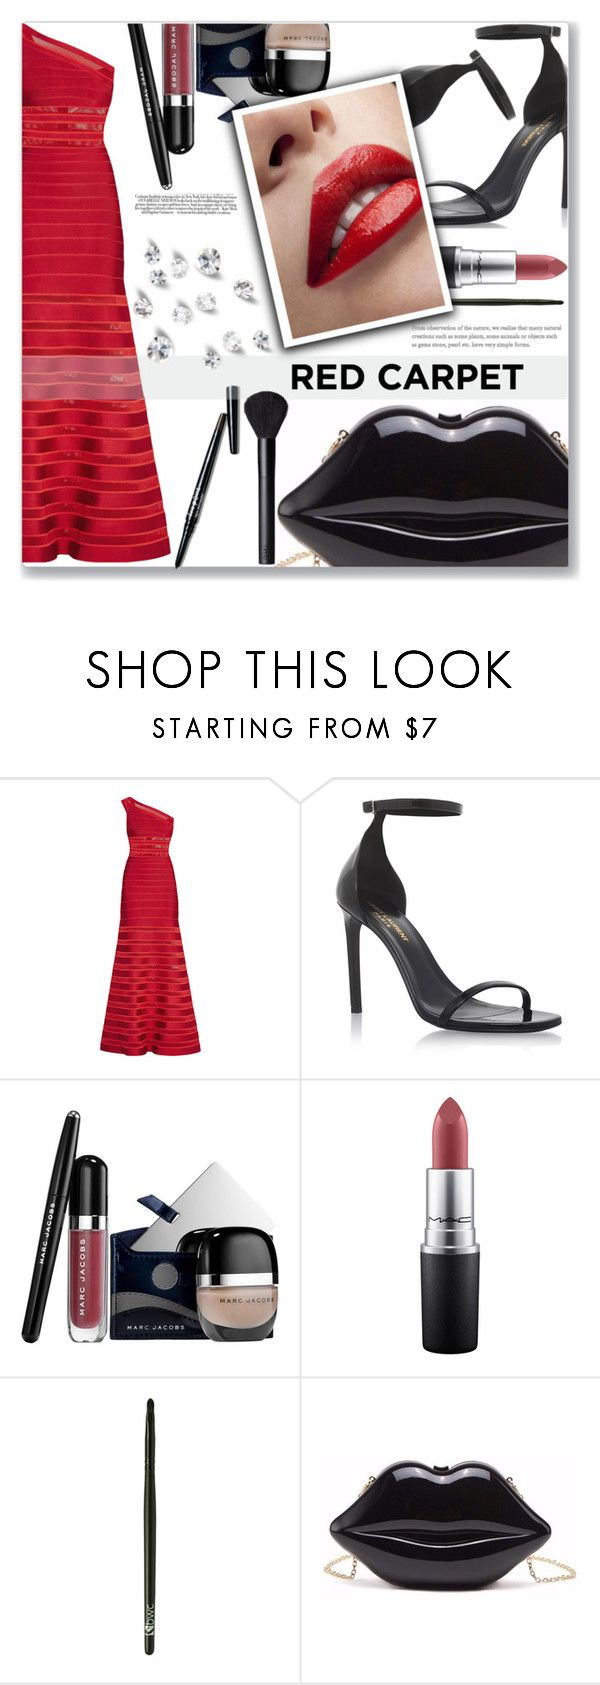 """""""Red Carpet"""" by loloksage ❤ liked on Polyvore featuring Hervé Léger, Yves Saint Laurent, Marc Jacobs, MAC Cosmetics, Avon and NARS Cosmetics"""